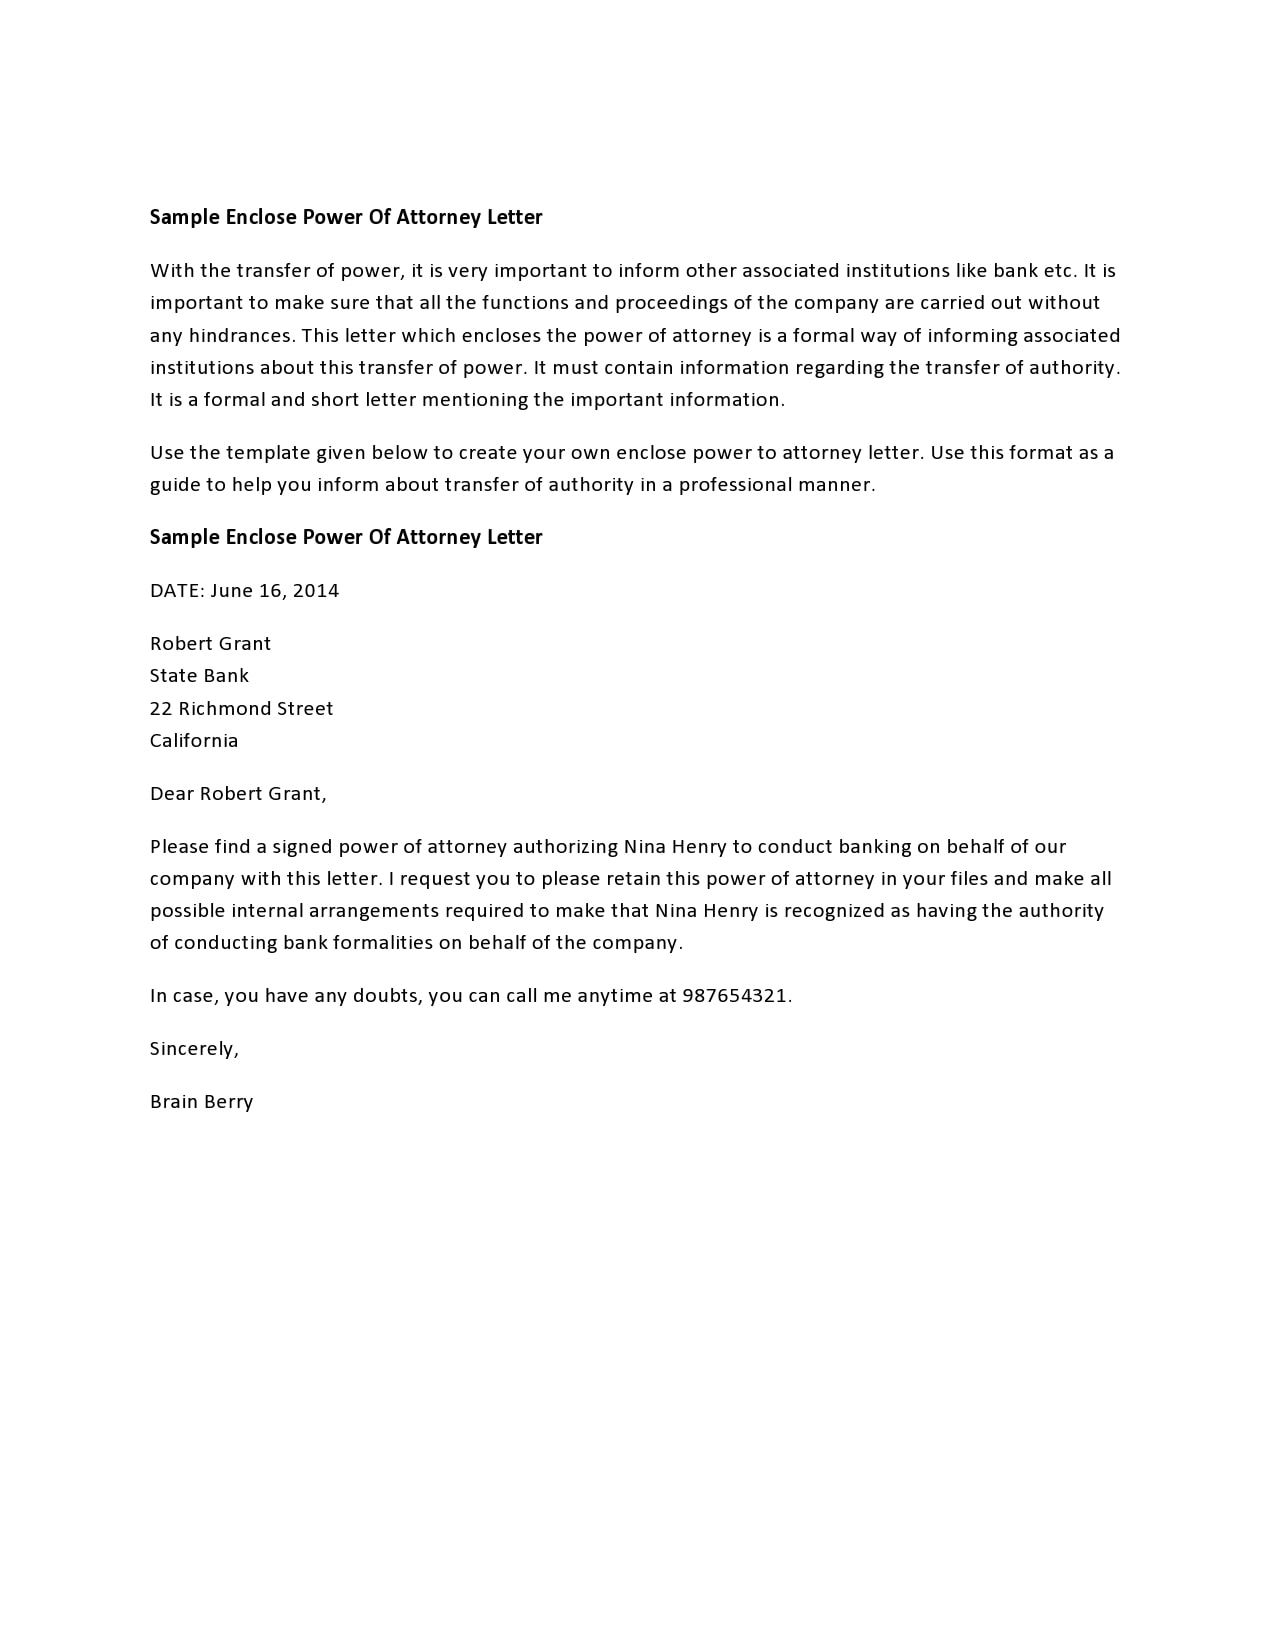 power of attorney letter 02